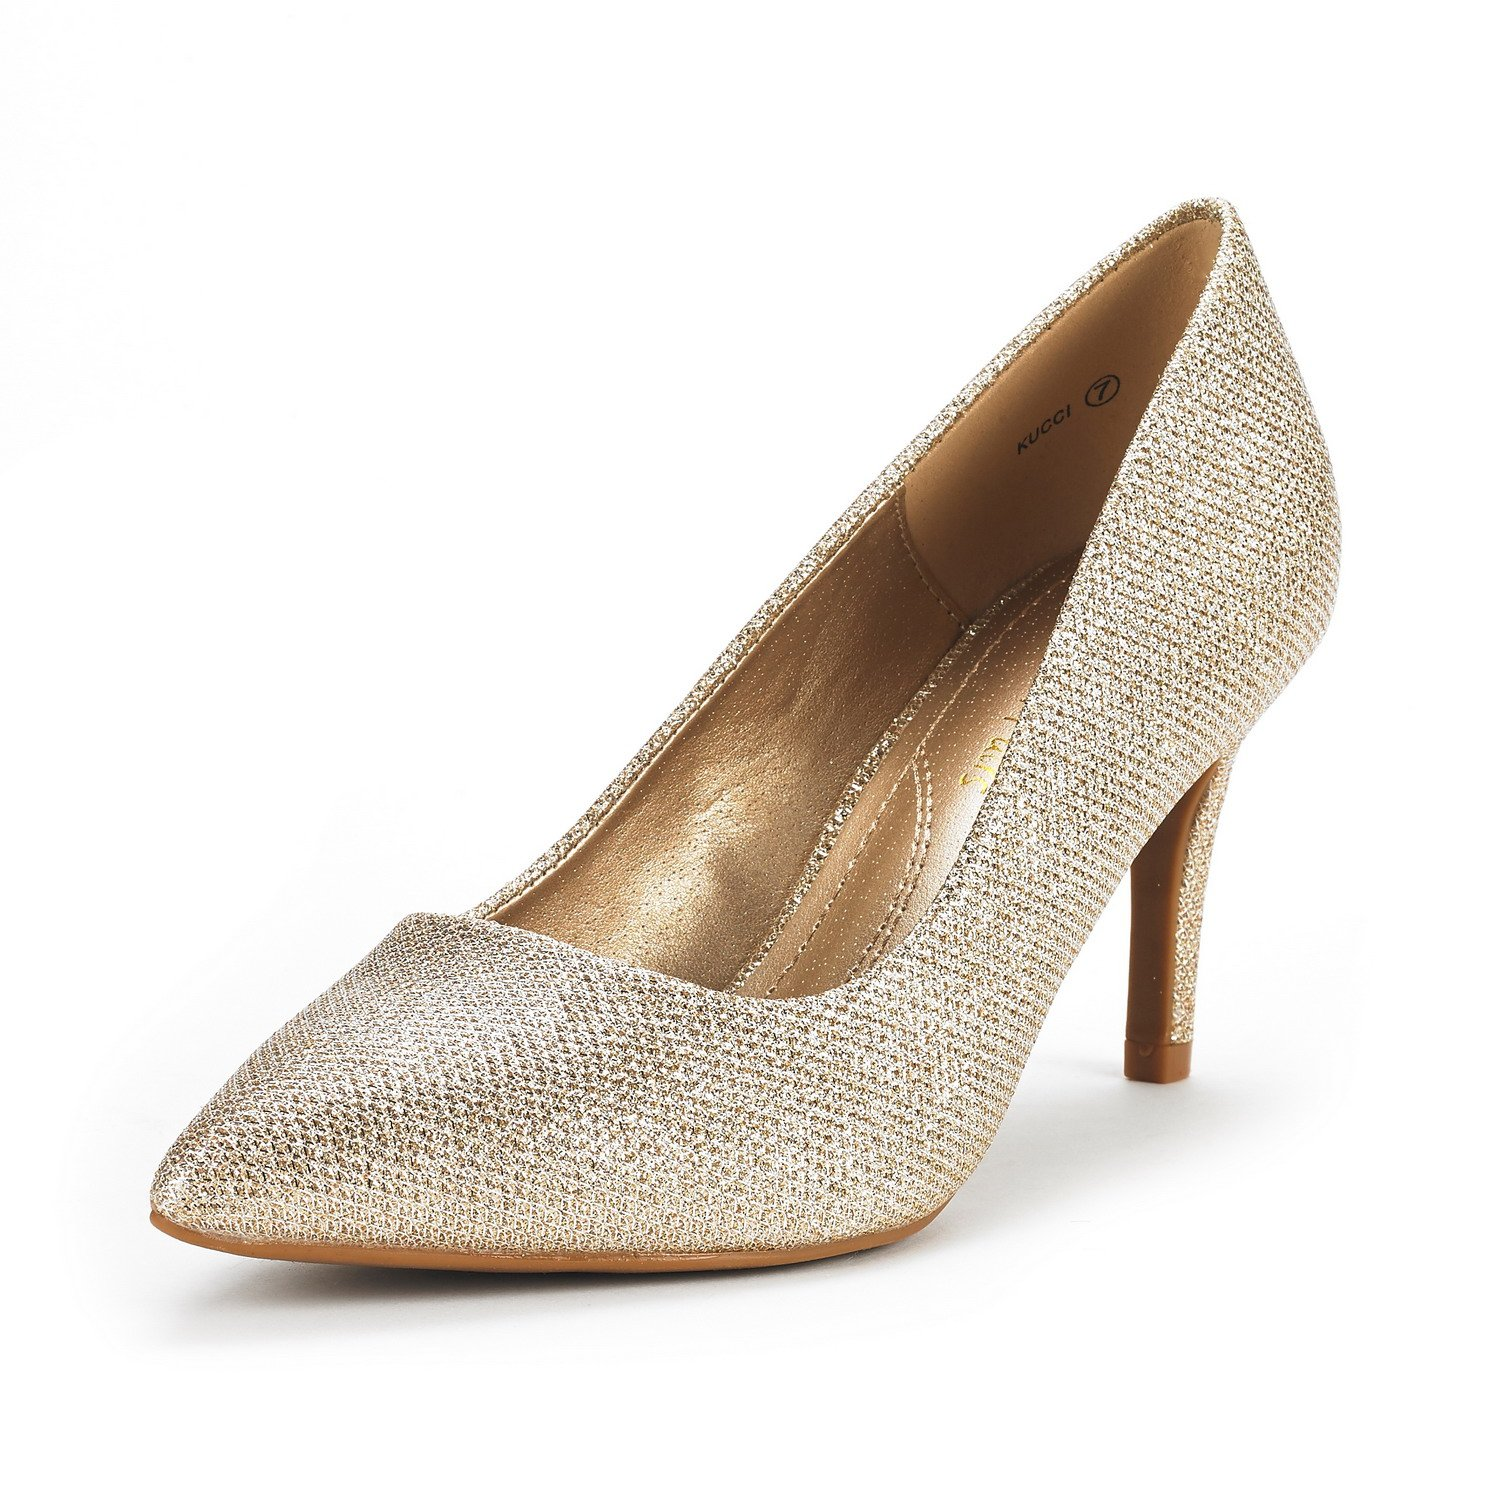 DREAM PAIRS Women's KUCCI Gold Glitter Classic Fashion Pointed Toe High Heel Dress Pumps Shoes Size 6.5 M US